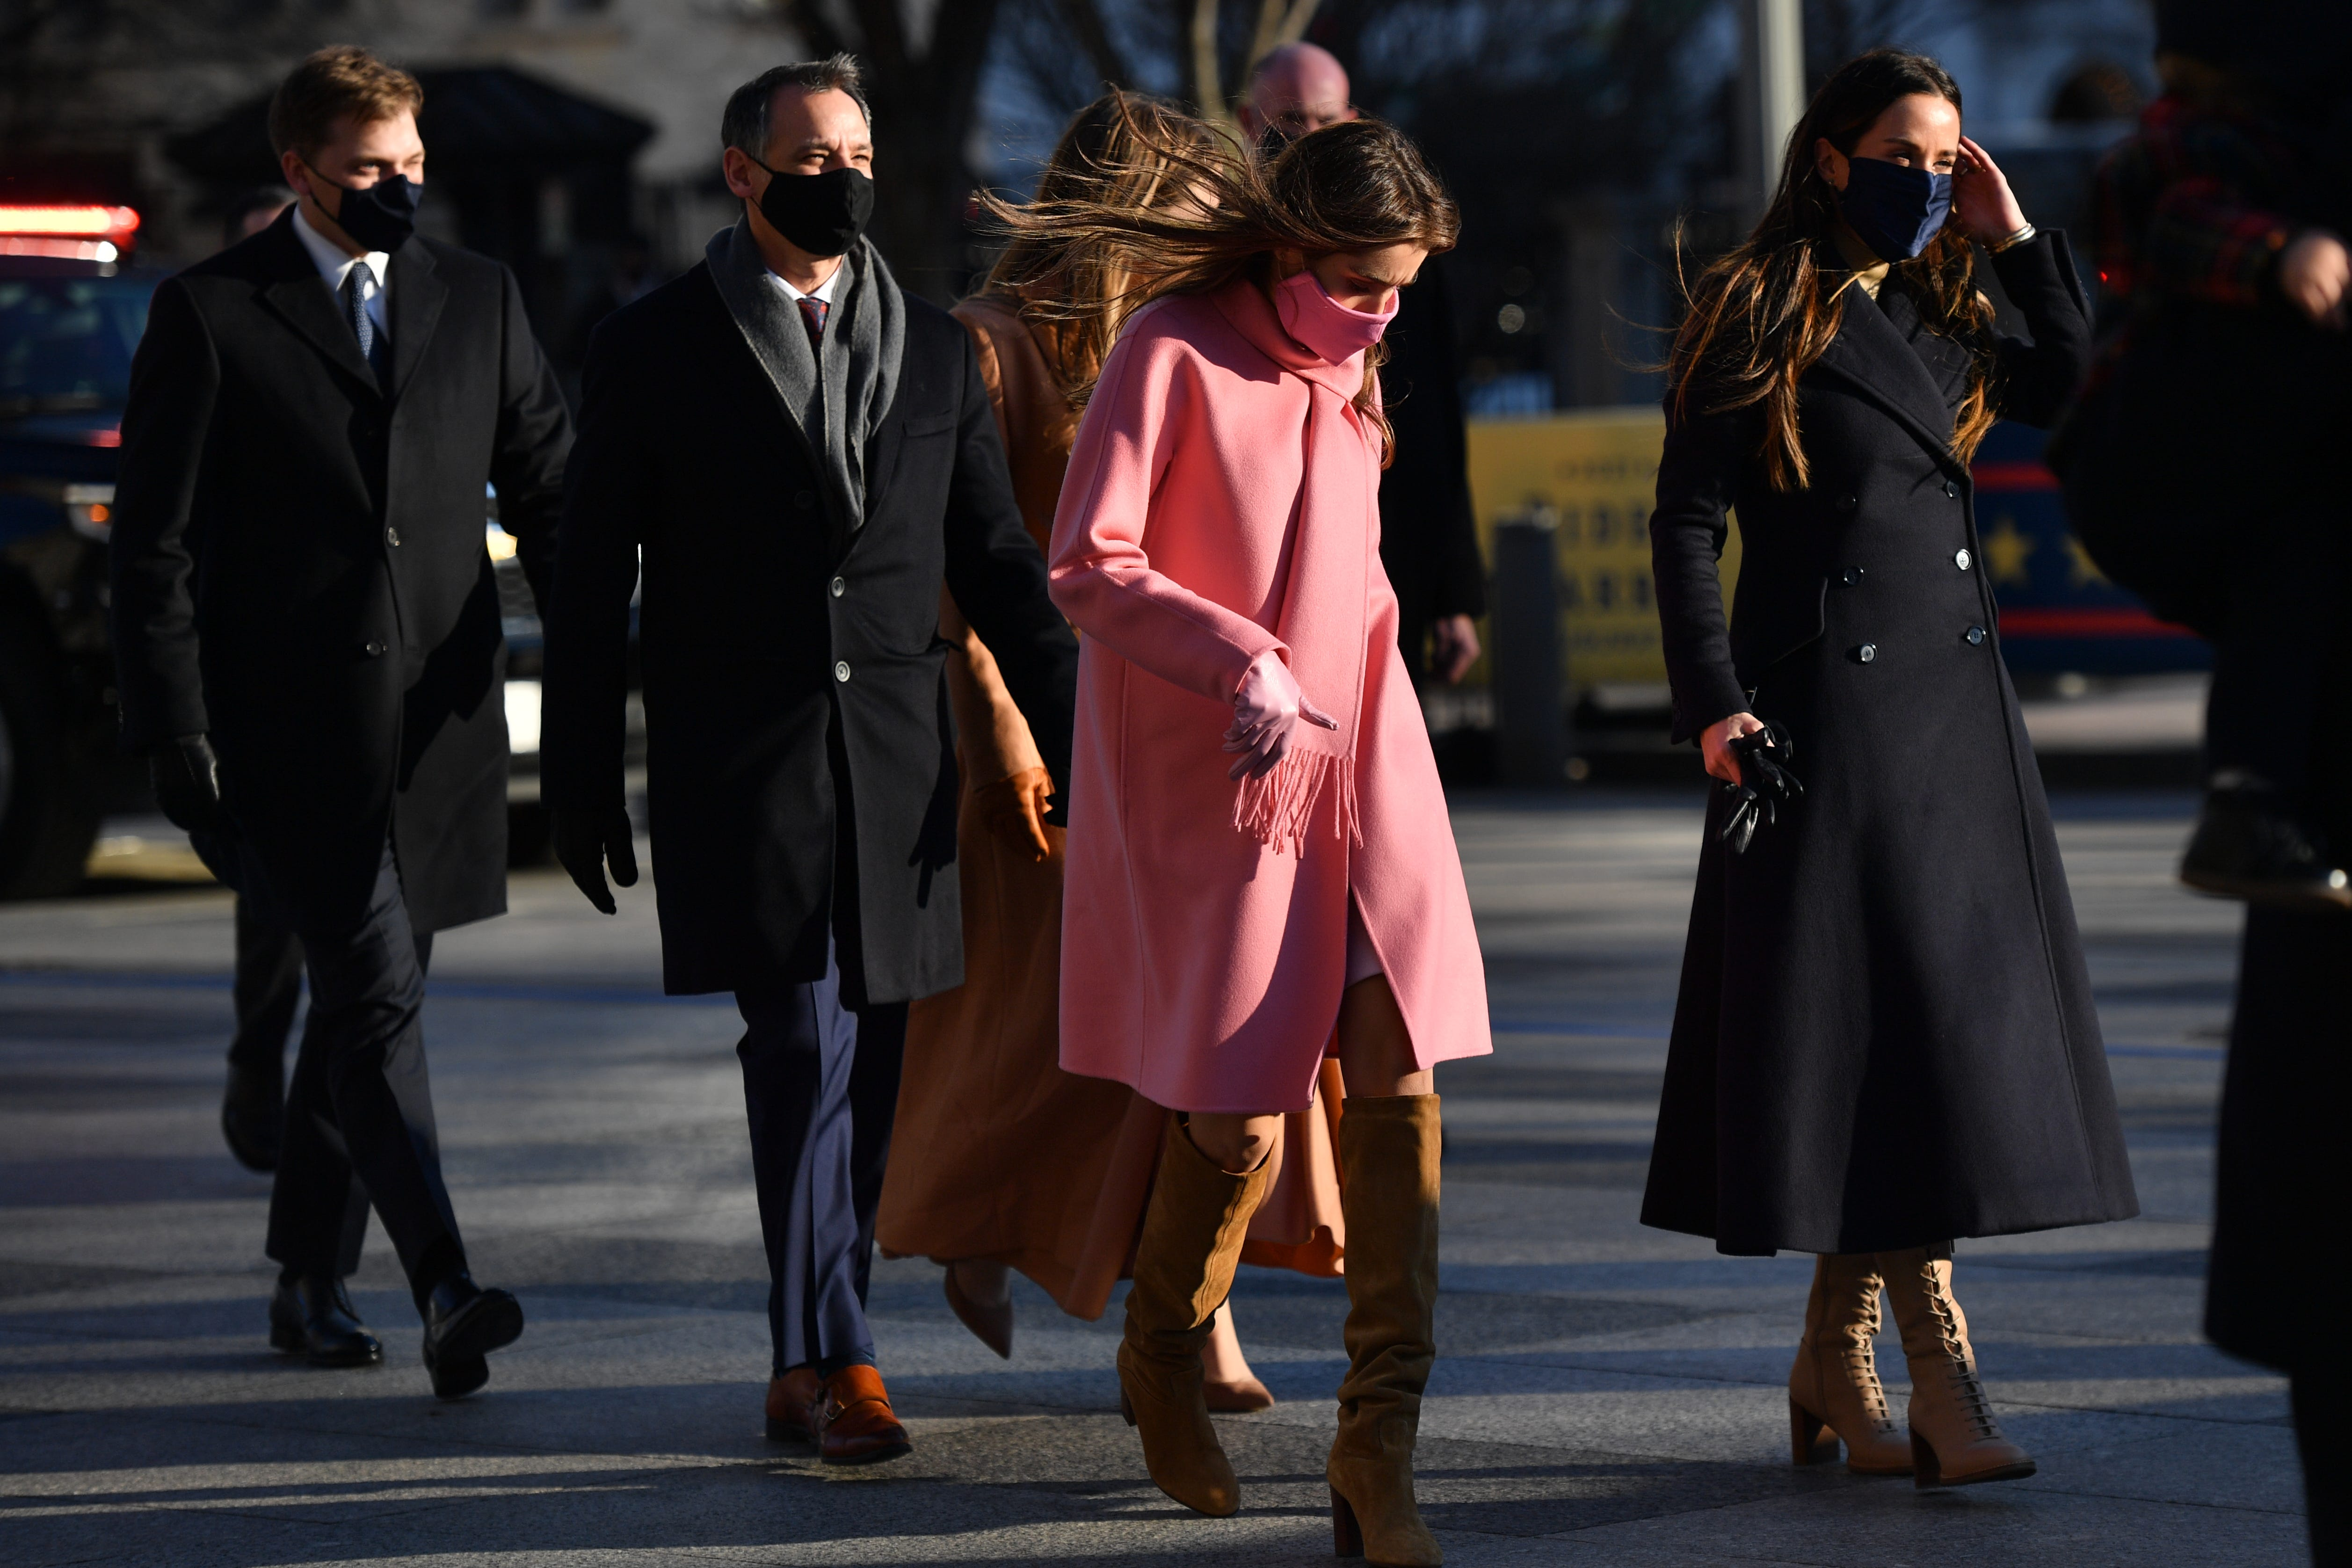 Natalie Biden, a granddaughter of U.S. President Joe Biden, gathers with family before walking along the abbreviated parade route after Biden's inauguration on January 20, 2021 in Washington, DC.